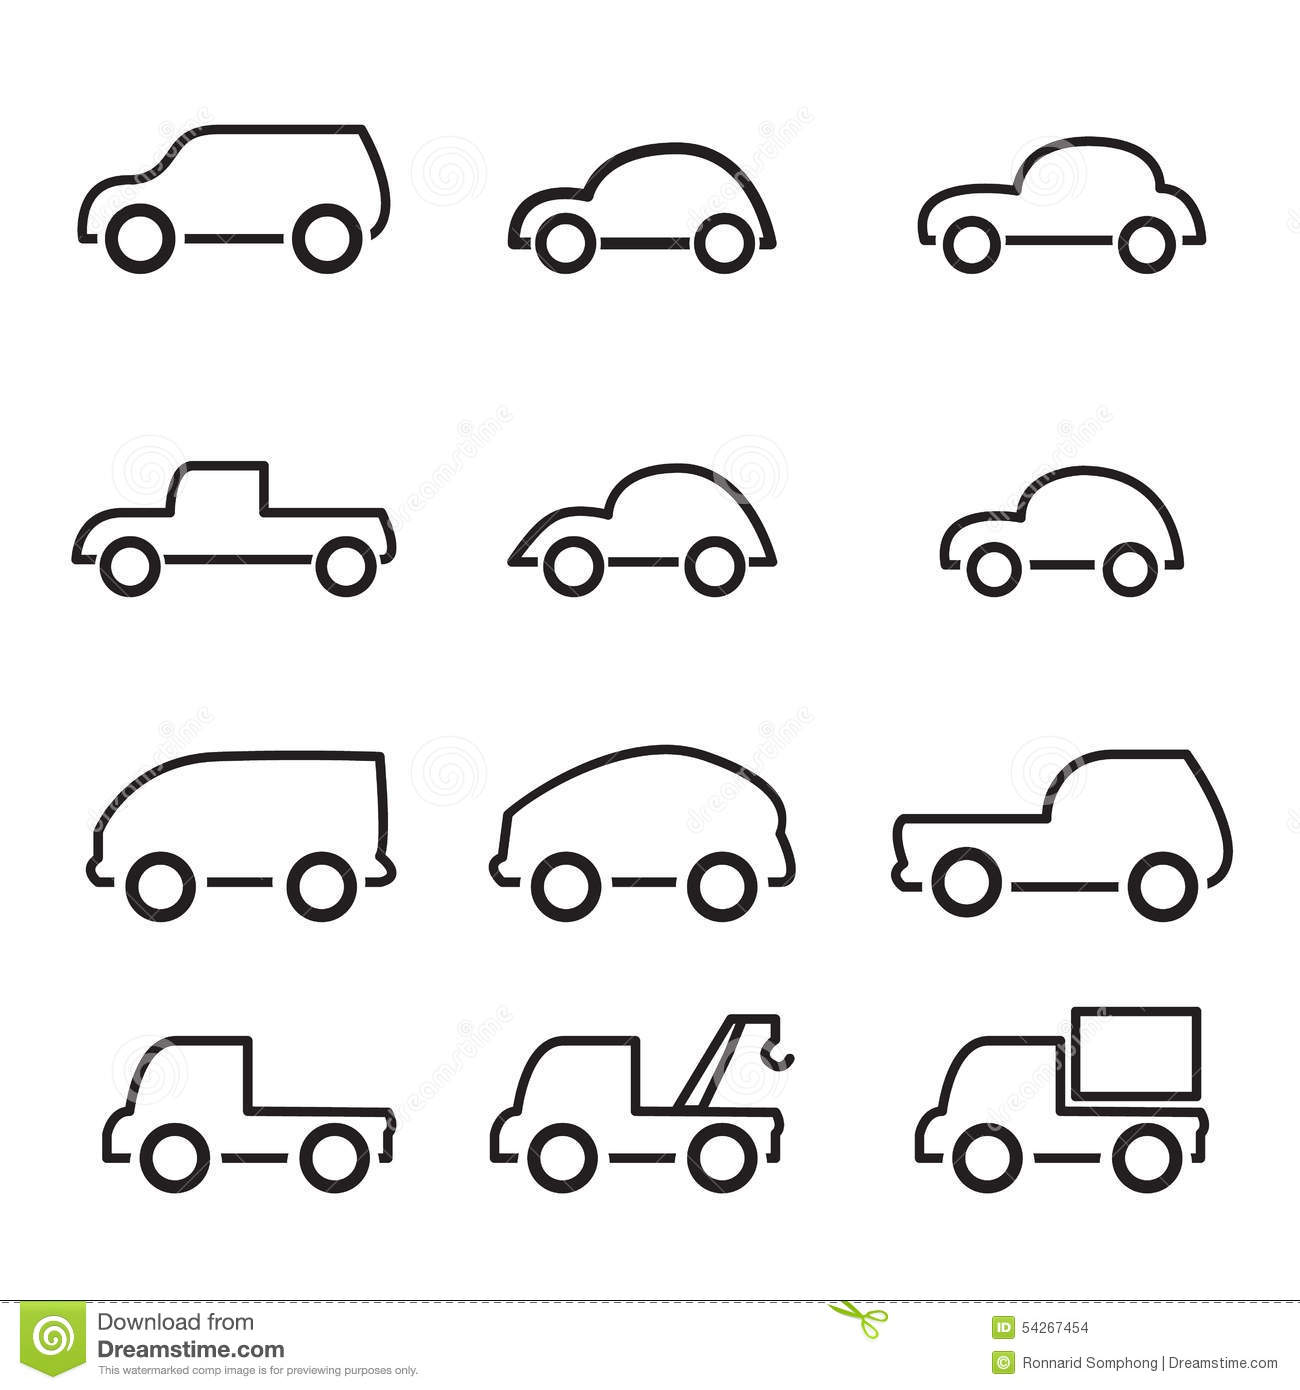 Coloring Pages further Stock Illustration Car Icon  mercial Vehicle Line Set Vector Illustration White Background Image54267454 also Stock Illustration Boys Jogging Vector Drawing Children Running Image44878437 also Decorative Clip Art Frames further Royalty Free Stock Images Polish Floral Folk Black Embroidery Frame Pattern Wzory Lowickie Traditional Border Print Form Poland Paper Catouts Style Isolated Image39886289. on summer vector graphics